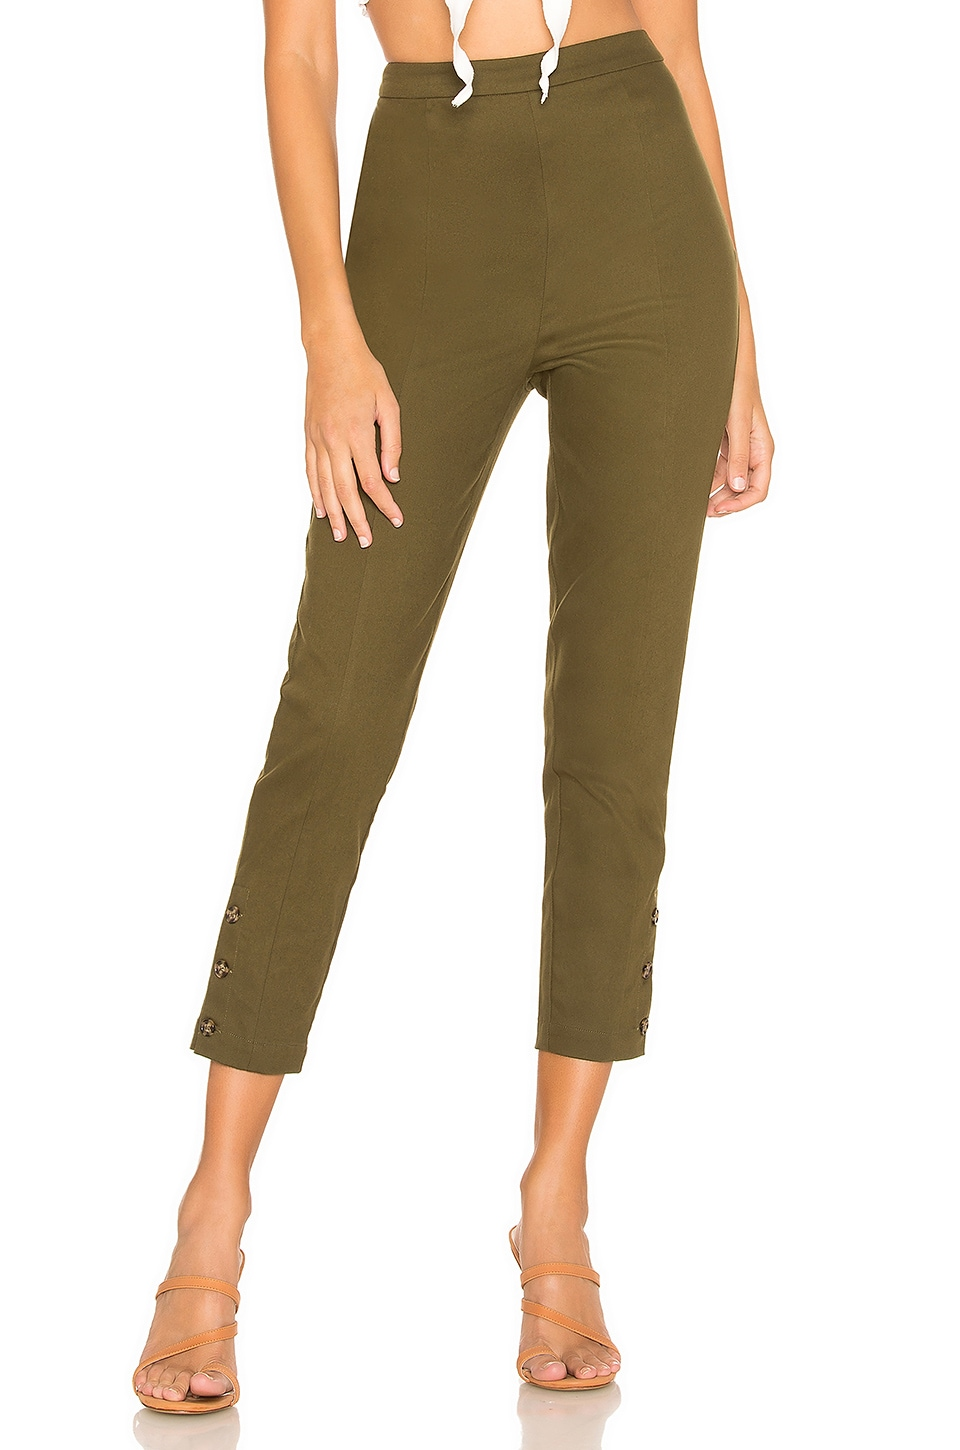 L'Academie Alloy Skinny Pants in Olive